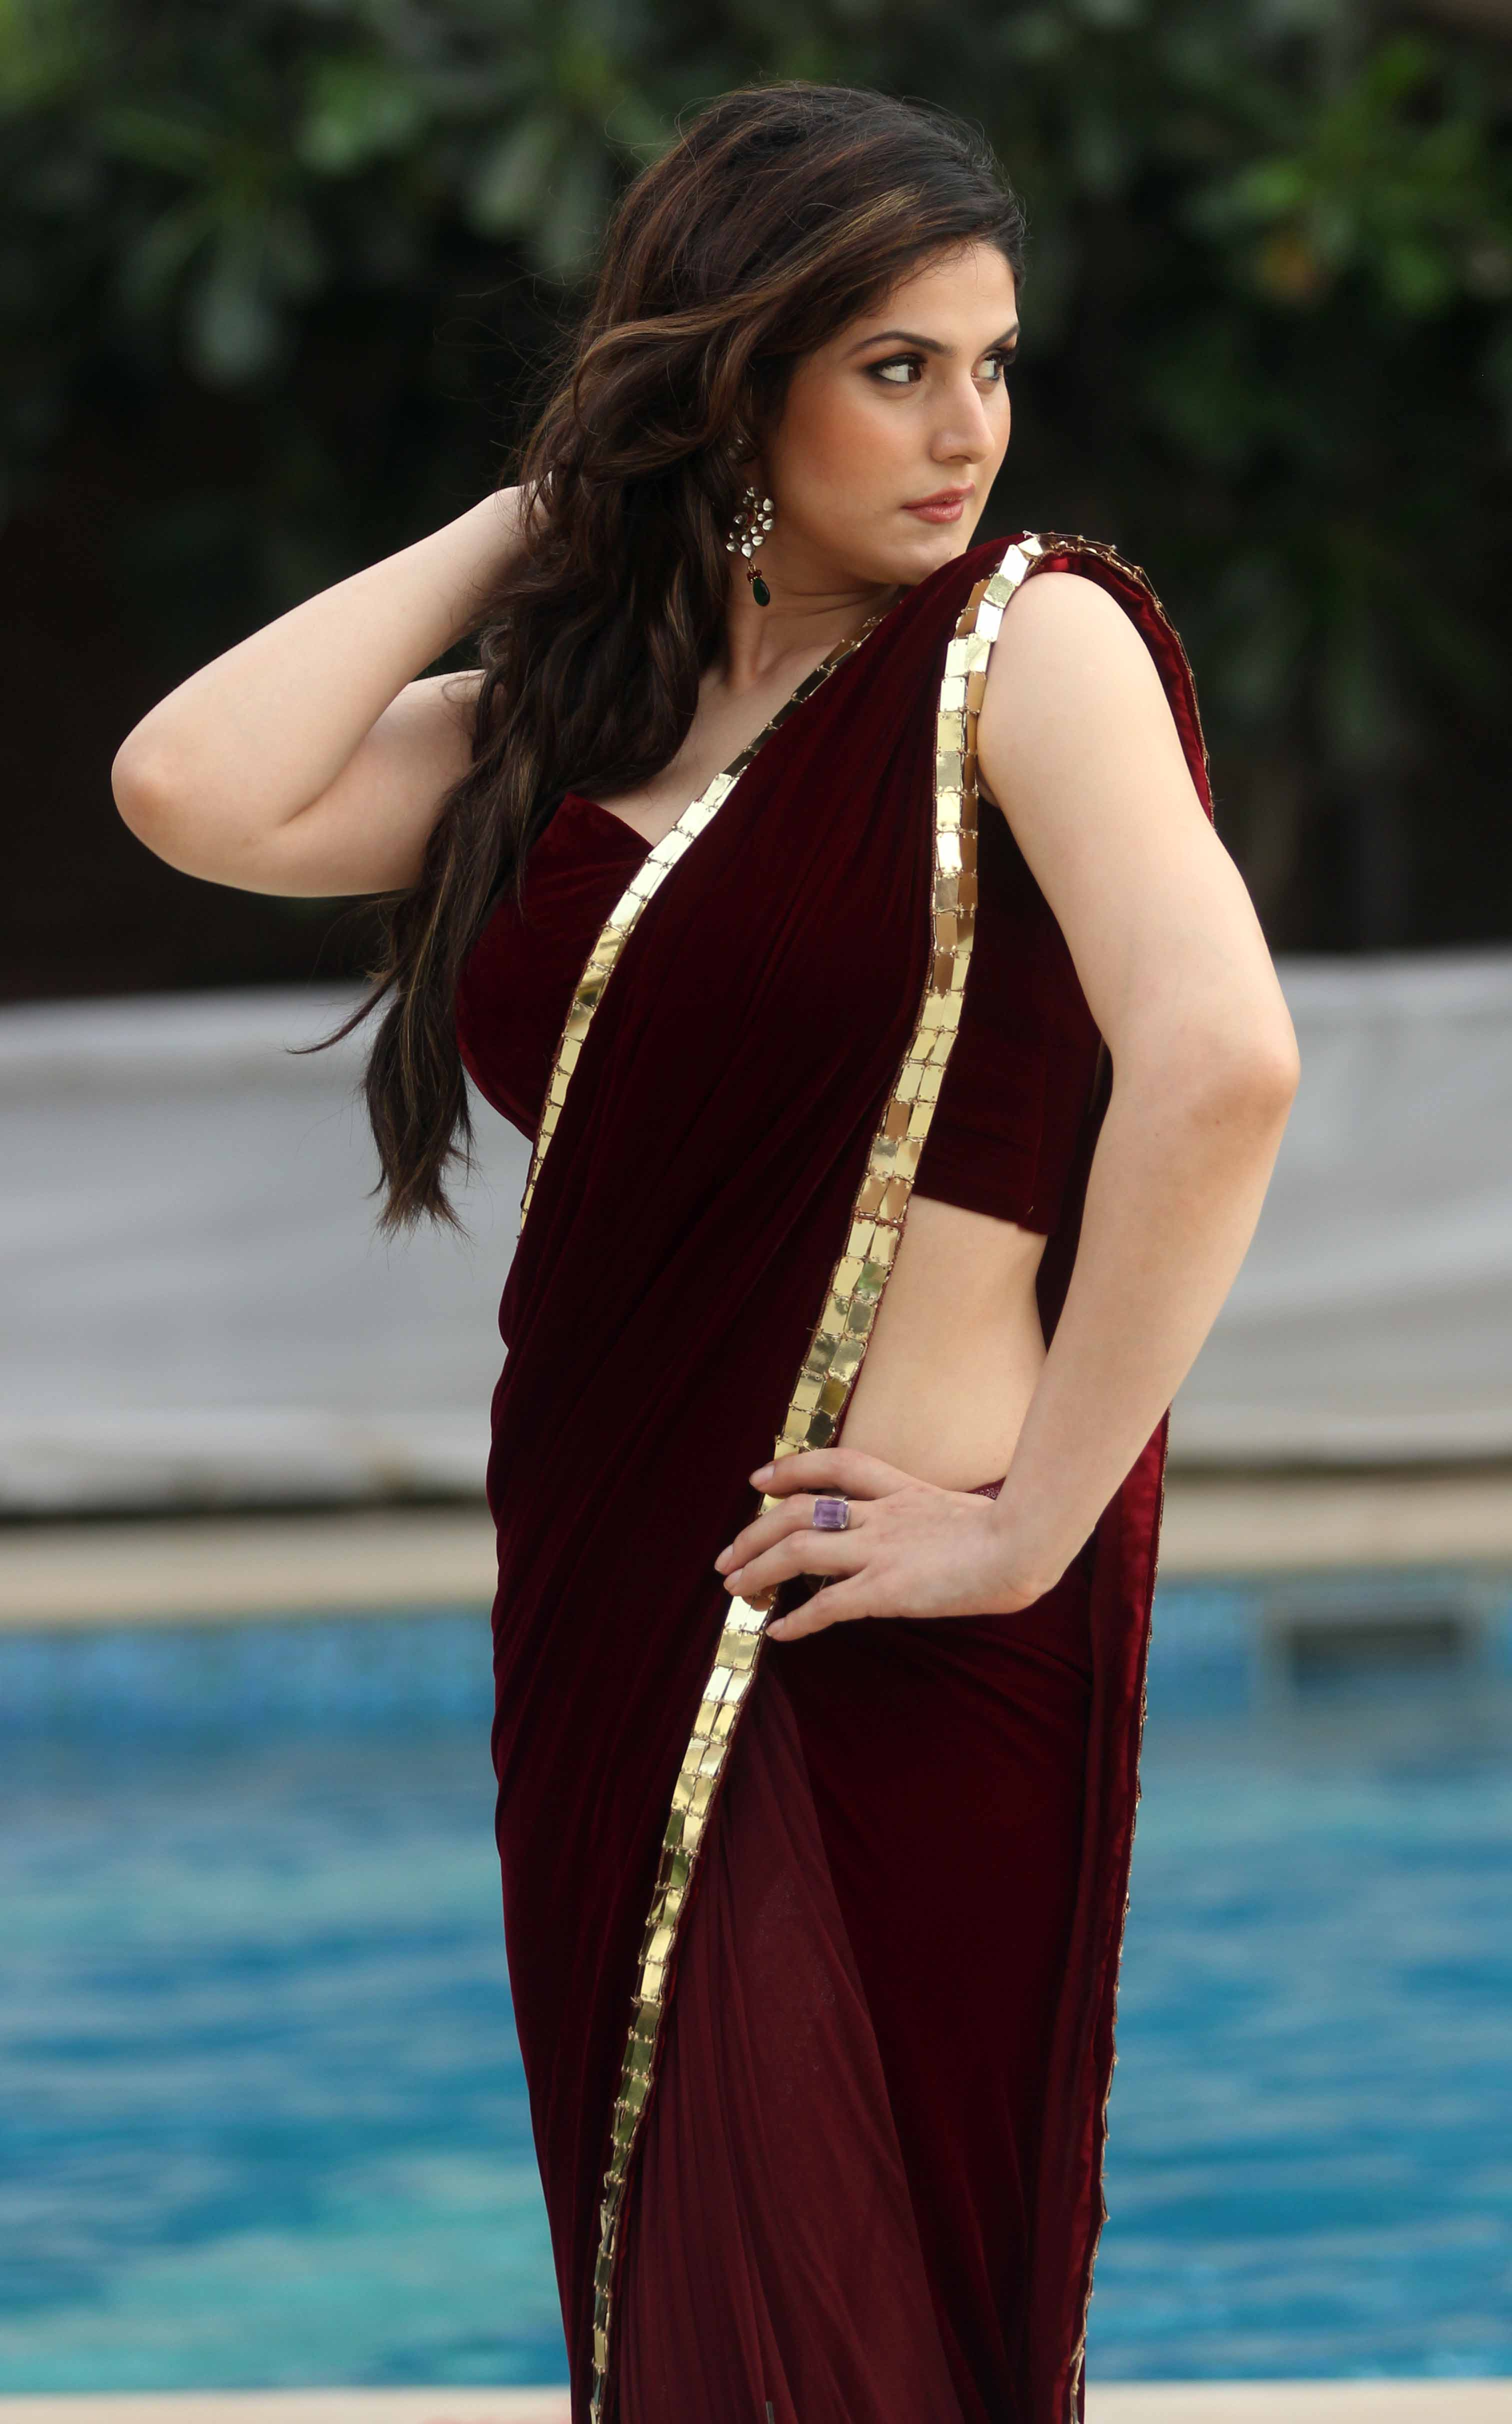 Zarine Khan HD Wallpapers • PoPoPics.com